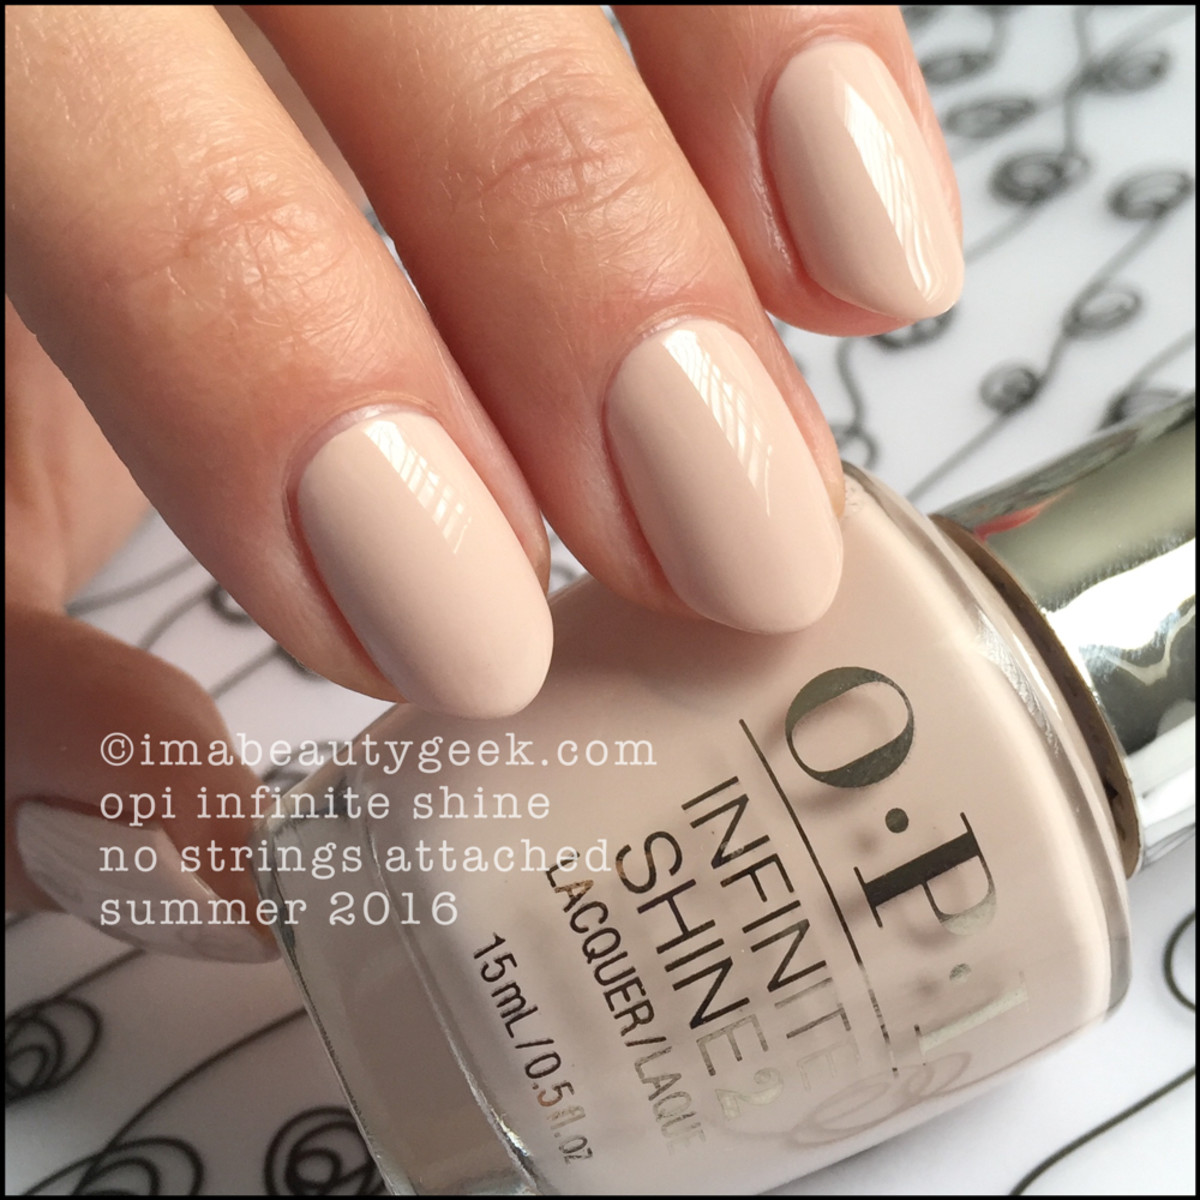 OPI INFINITE SHINE SUMMER 2016 SWATCHES/REVIEW - Beautygeeks